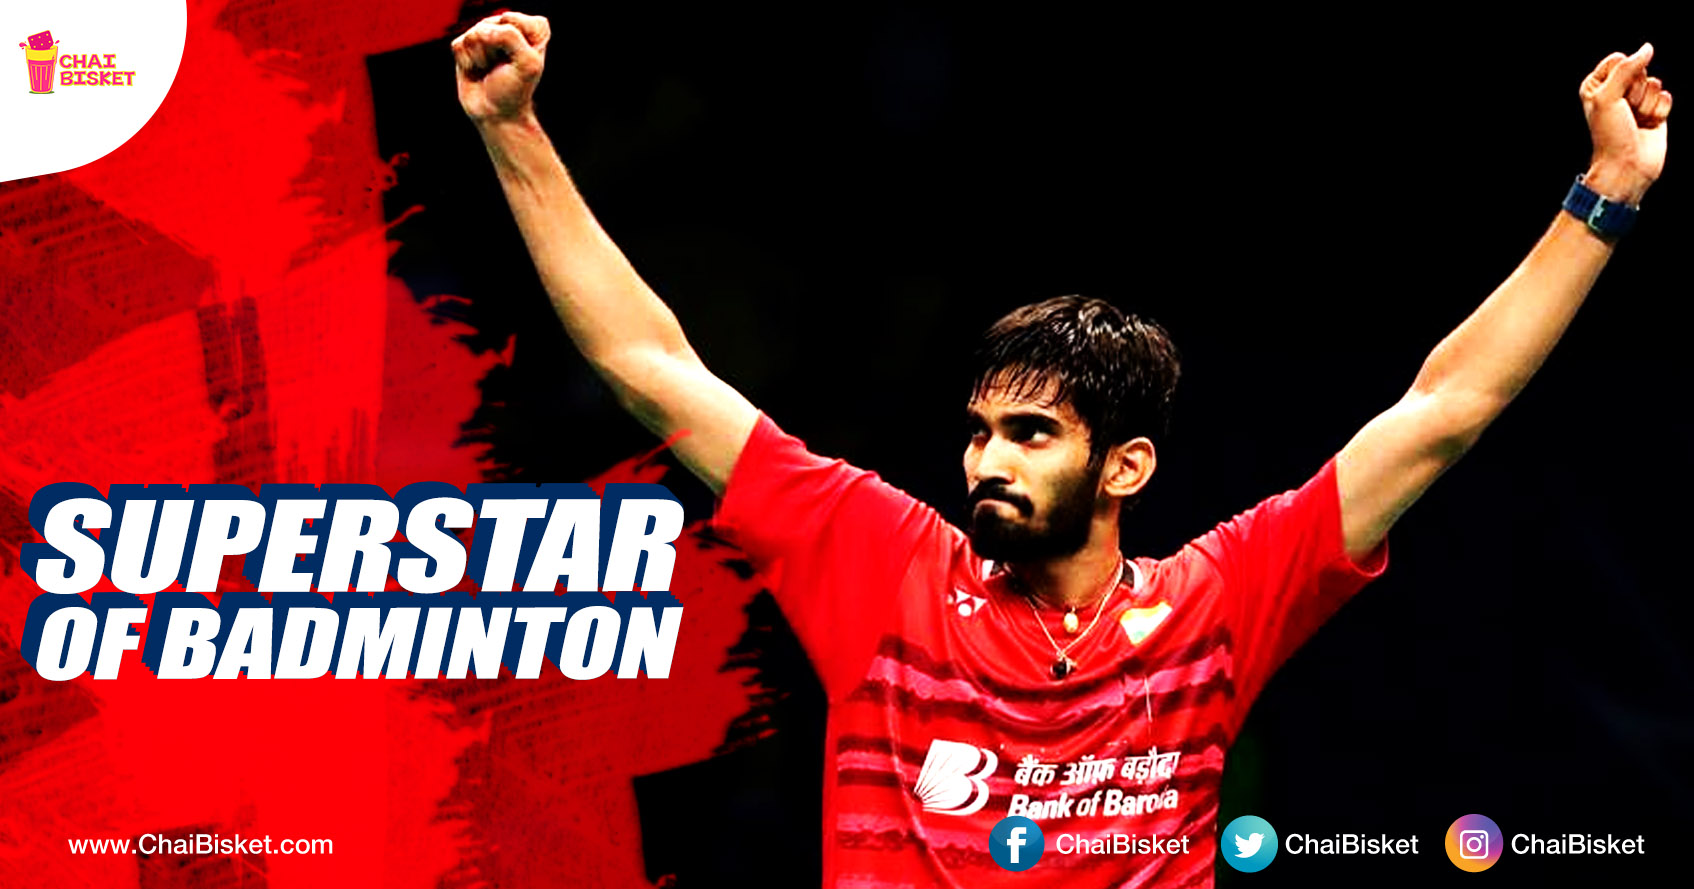 The Latest Super Star World Badminton Registers Another Major